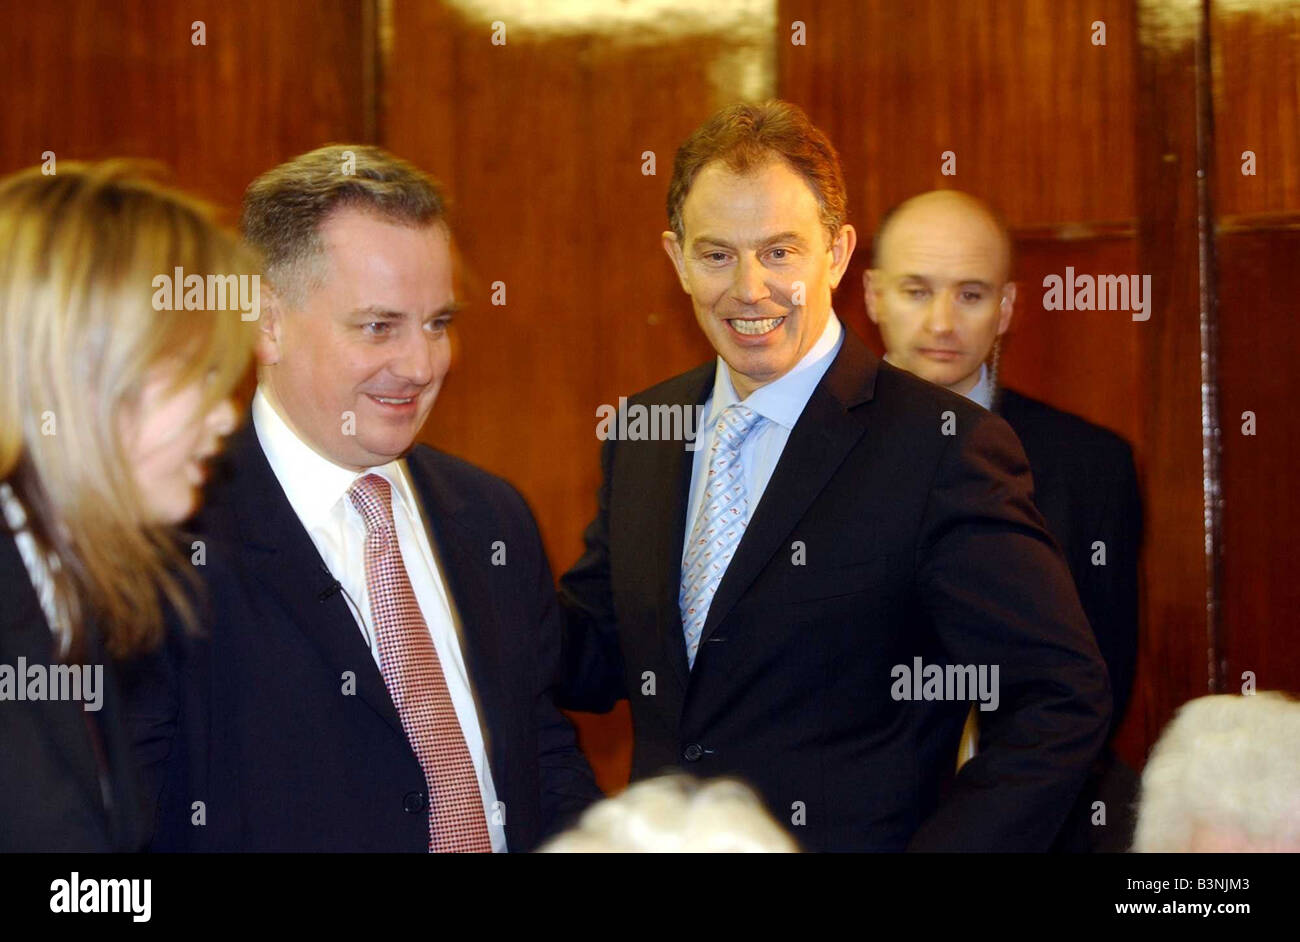 Tony Blair Prime Minister with Jack McConnell at the Merkinch Community Centre in Inverness Scotland February 2004 - Stock Image